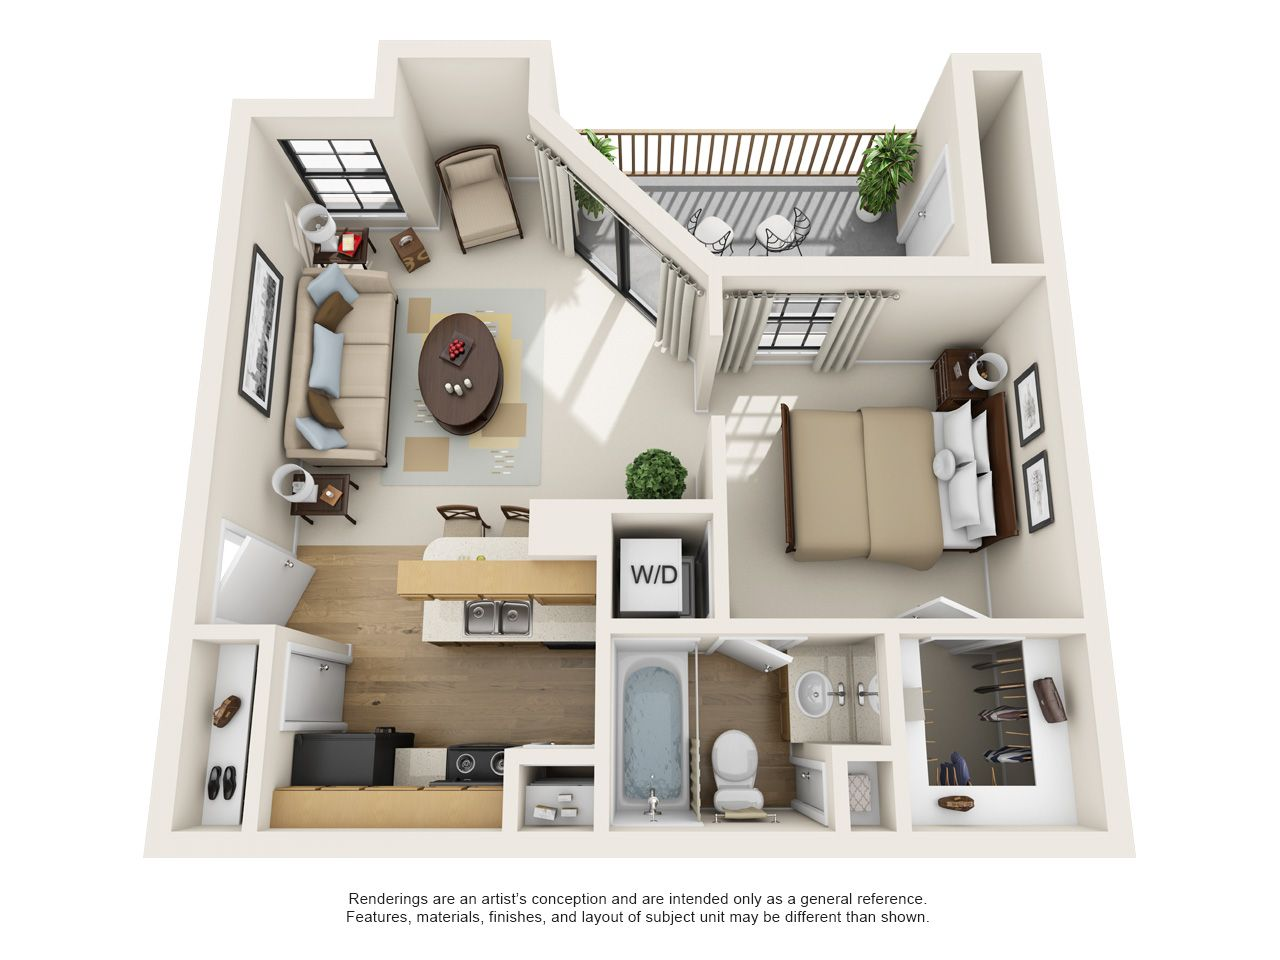 One And Two Bedroom Apartments In Dallas Tx Layouts Dallas Texas Apartment Steadfast Studio Apartment Floor Plans Apartment Layout Sims House Plans